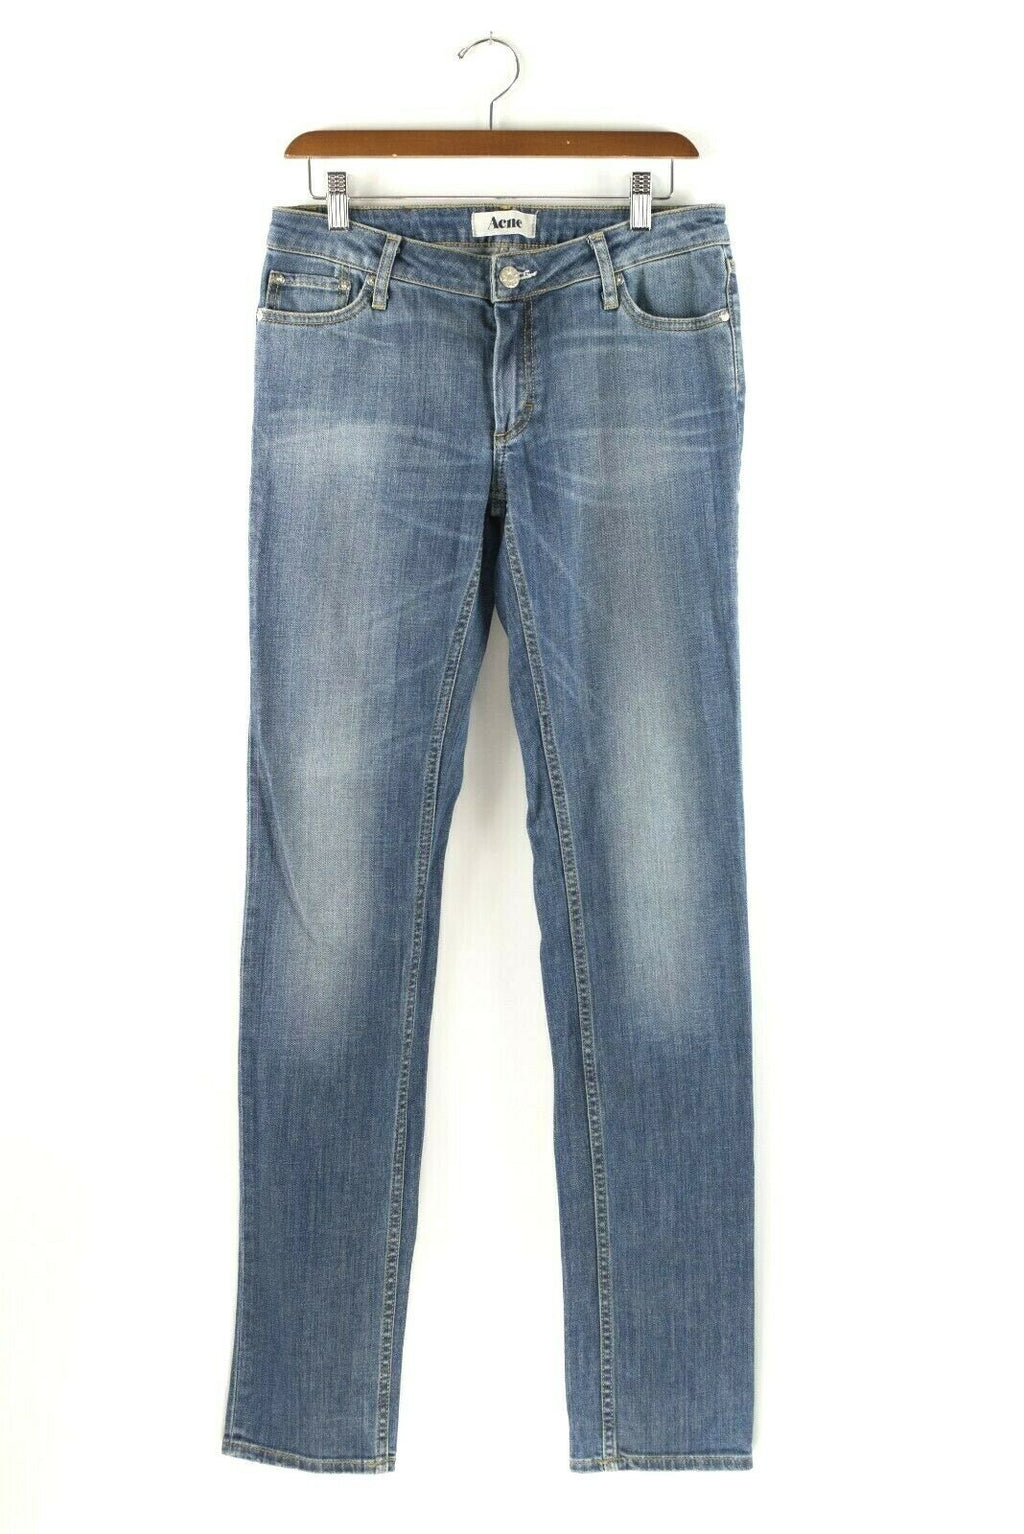 Acne Studios Womens Size 31 Blue Jeans Skinny Slim Faded Denim Straight Bootcut